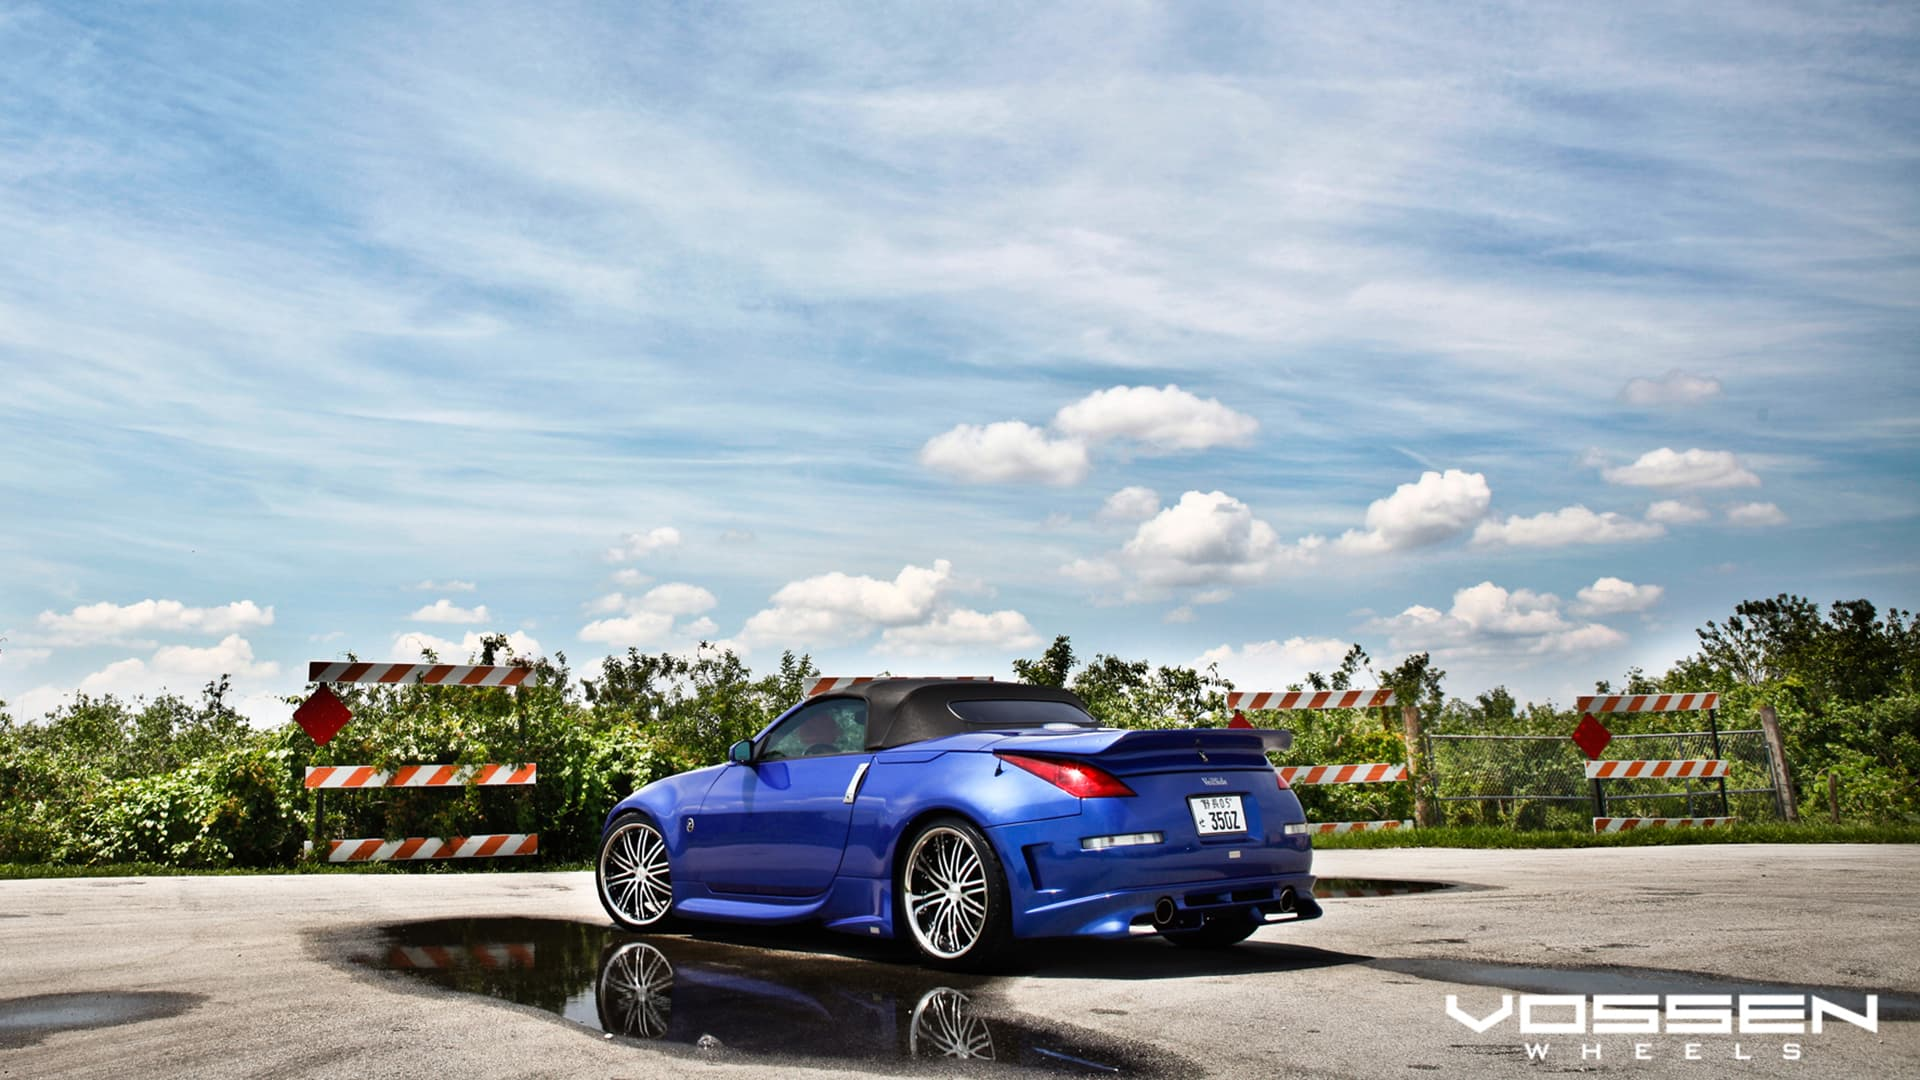 Nissan 350z Roadster Wallpapers HD Convertible, Blue